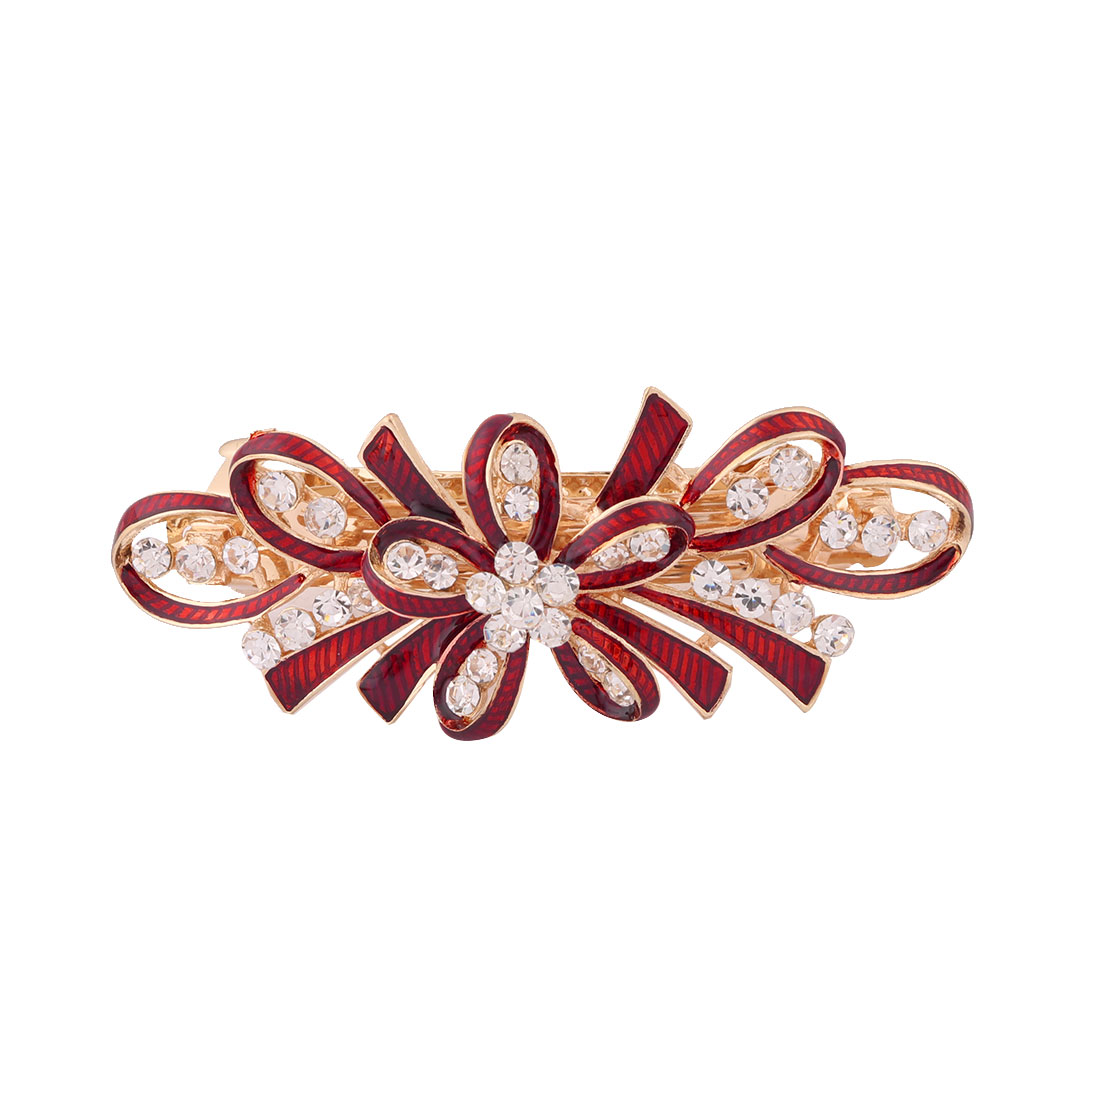 Ladies Metal Bowknot Design Faux Rhinestones Inlaid Hairwearing Hair Clip Red